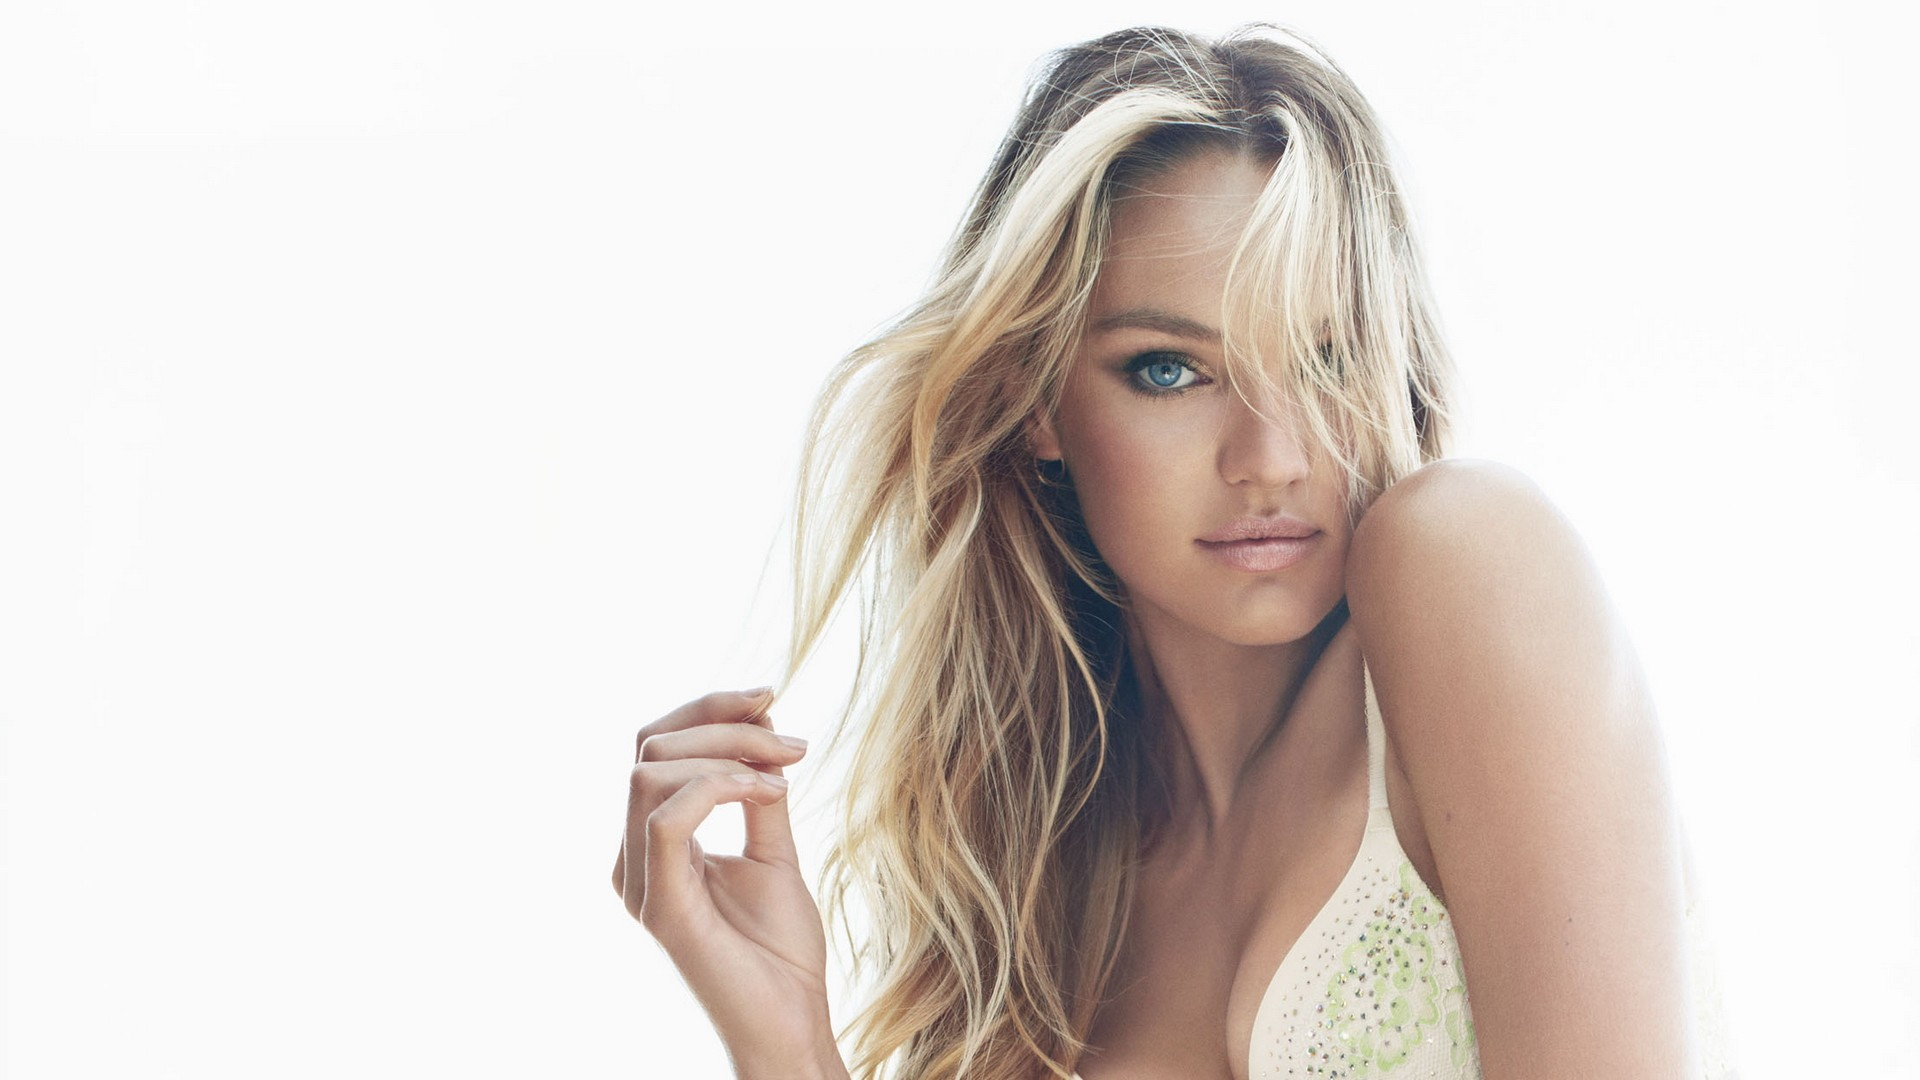 candice swanepoel wallpaper hd iphone